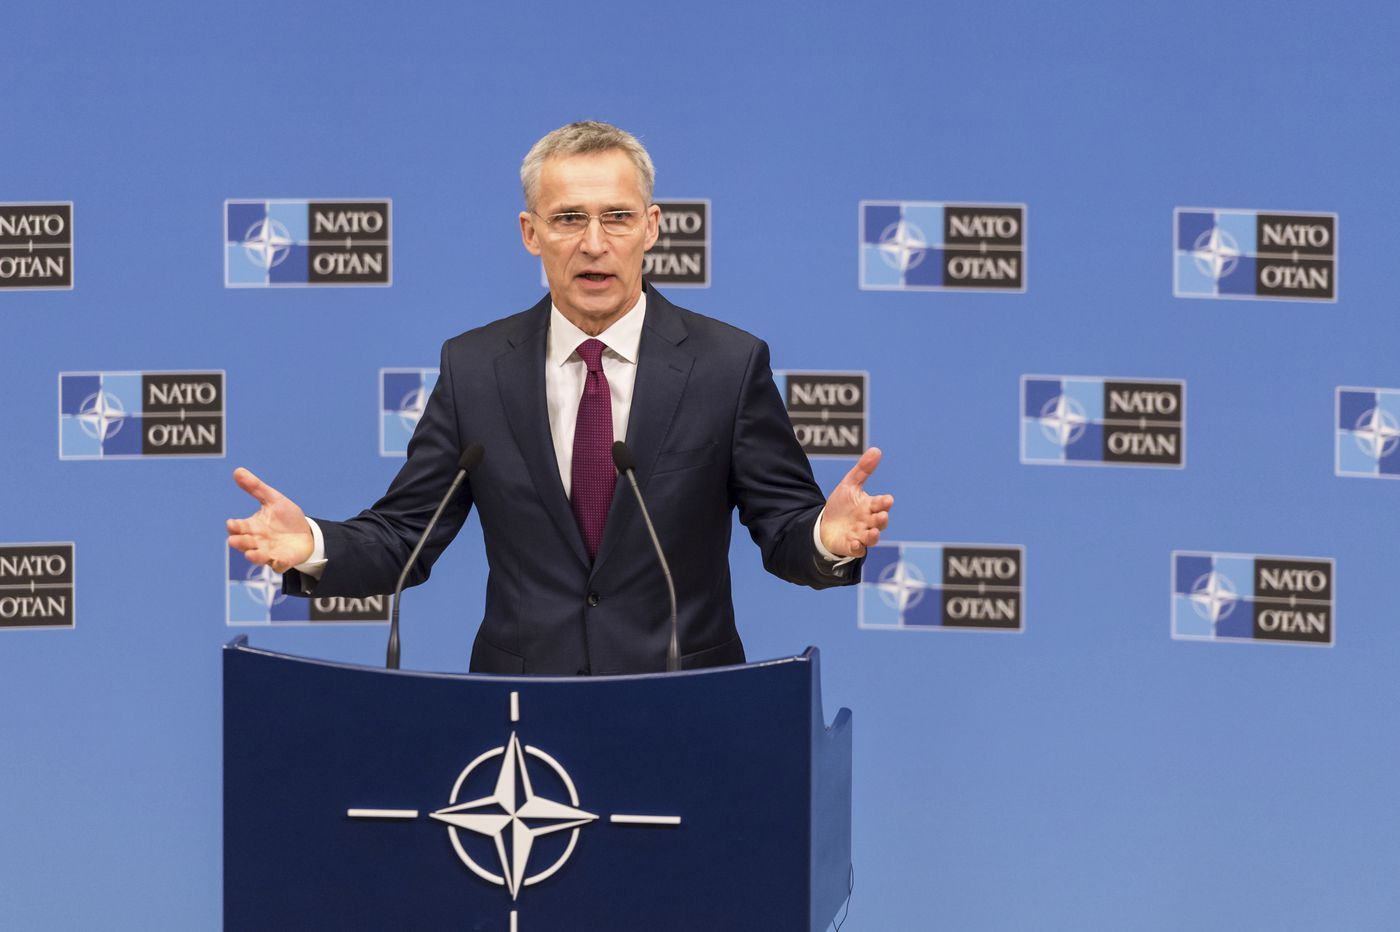 NATO's job of providing security for over 900 million citizens can no longer be measured by a 1949 yardstick   Opinion